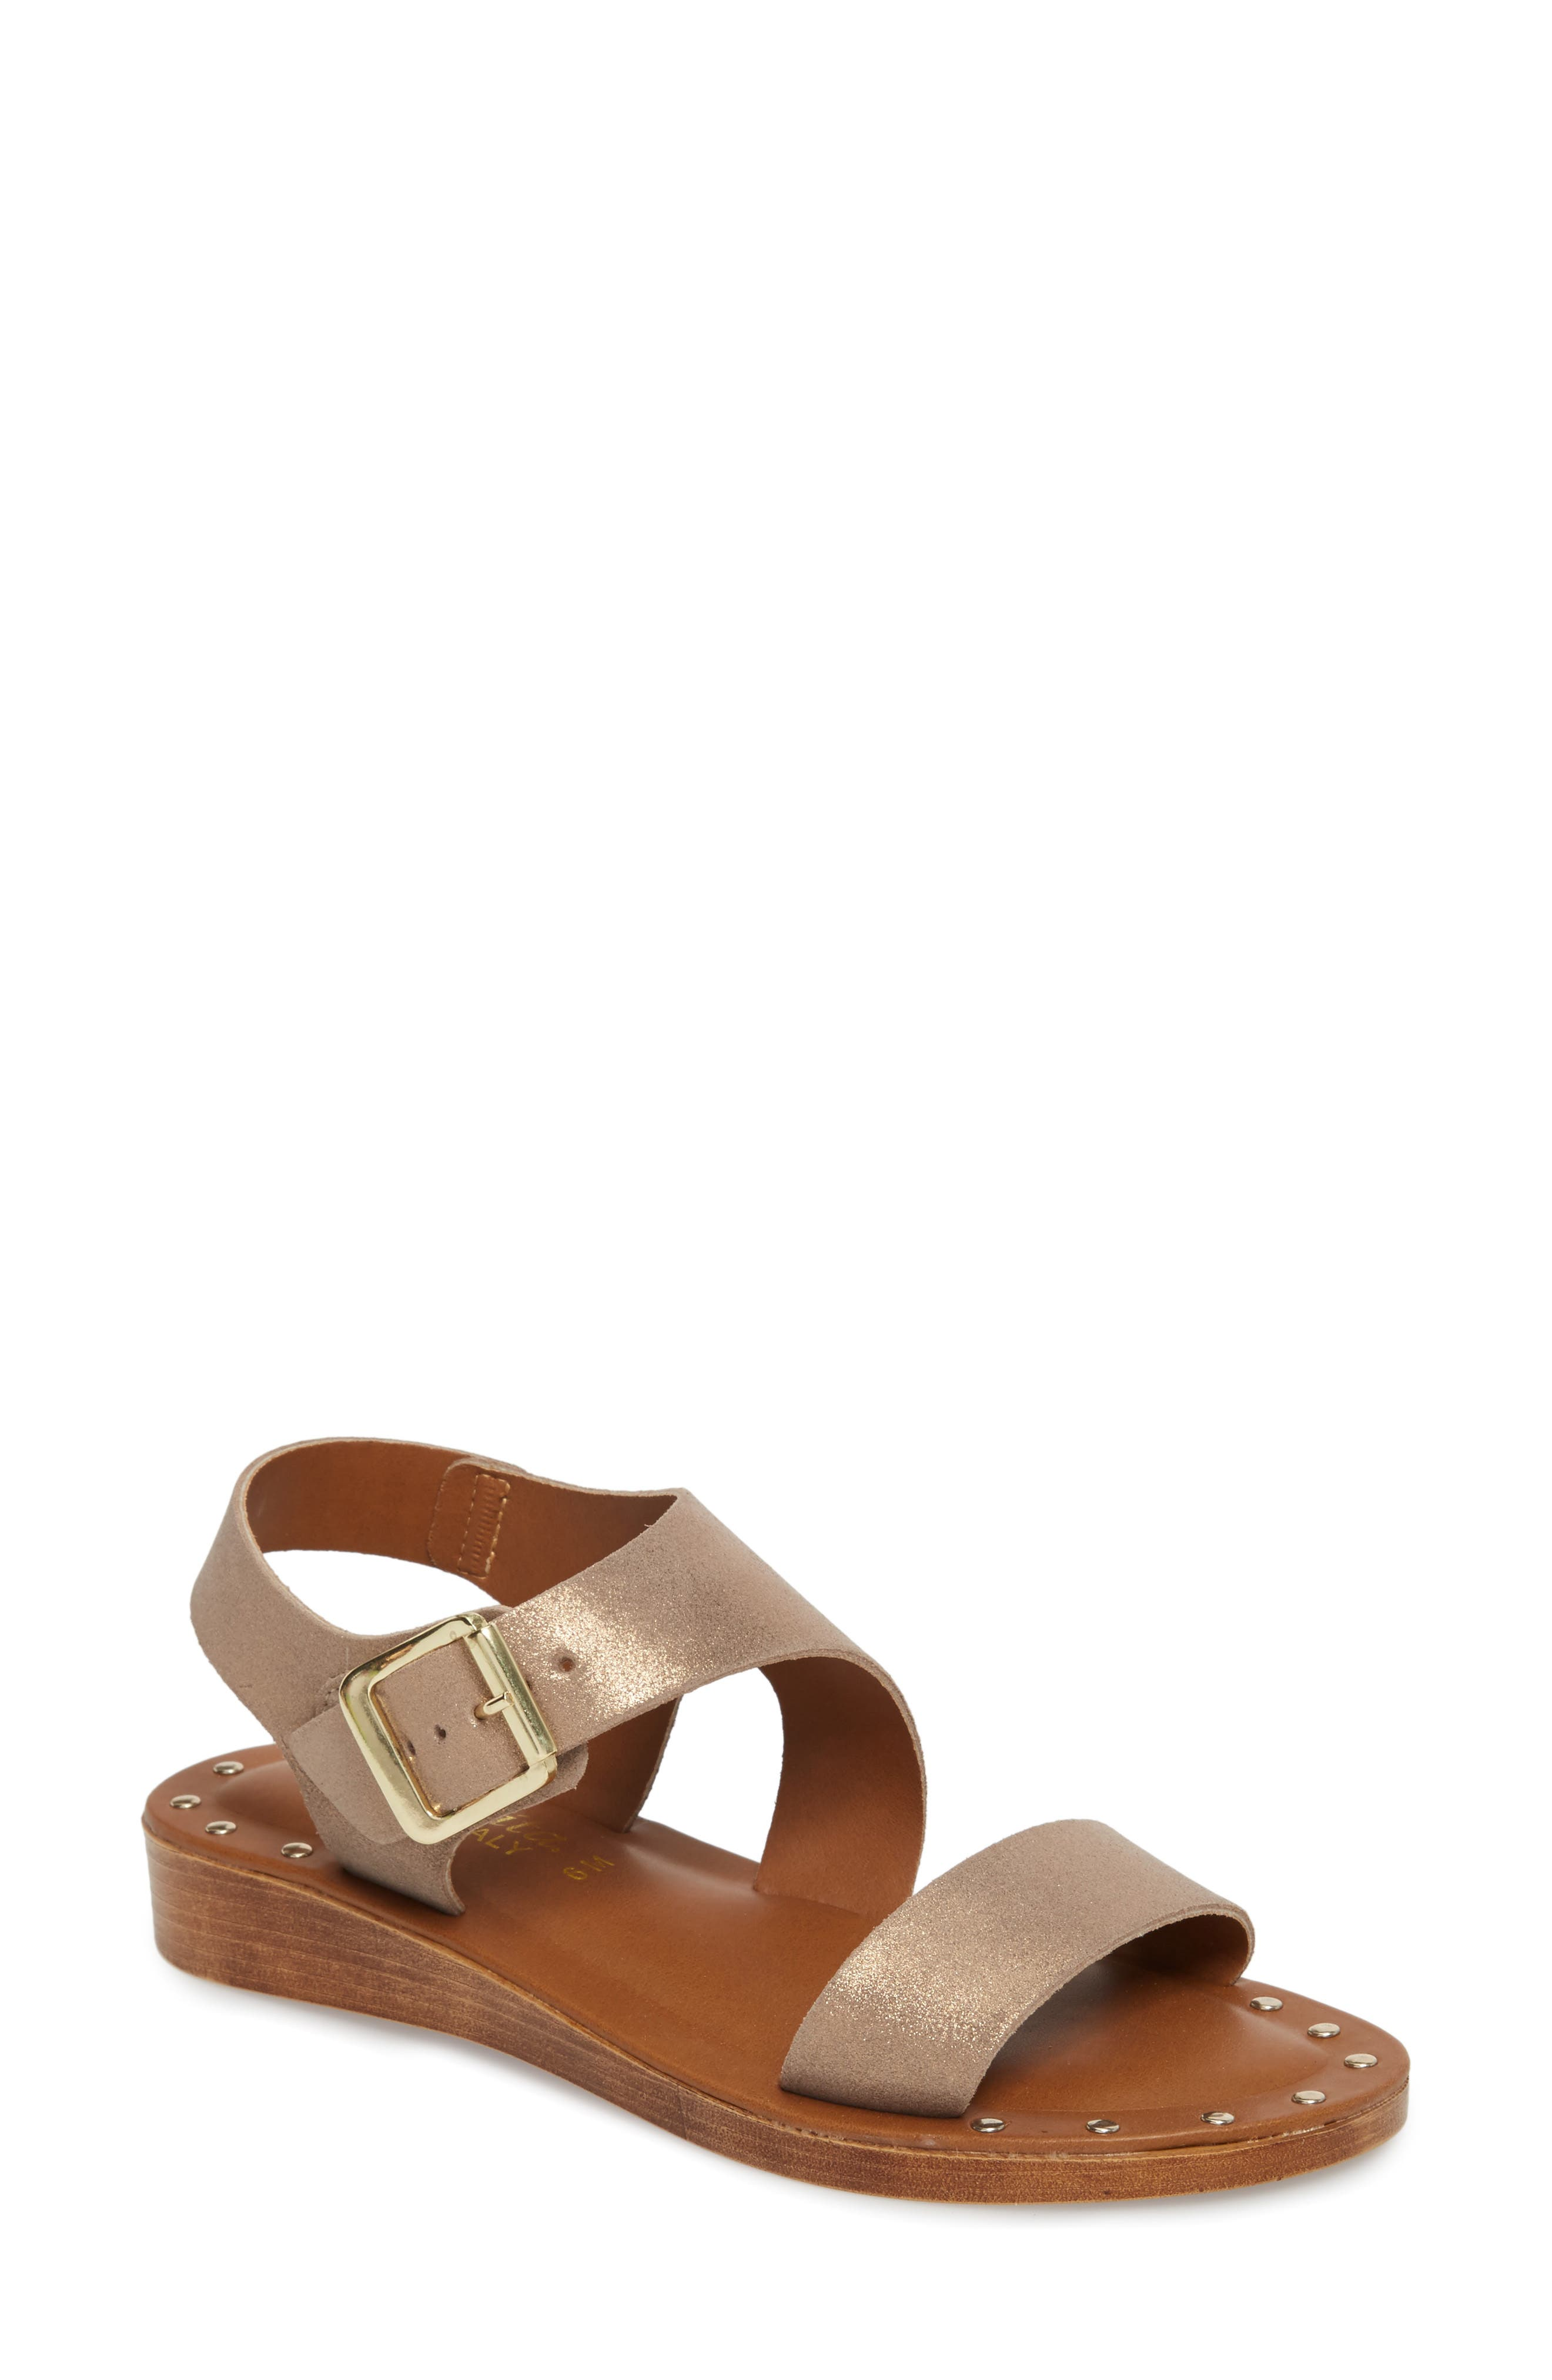 Luc Sandal,                         Main,                         color, Champagne Leather